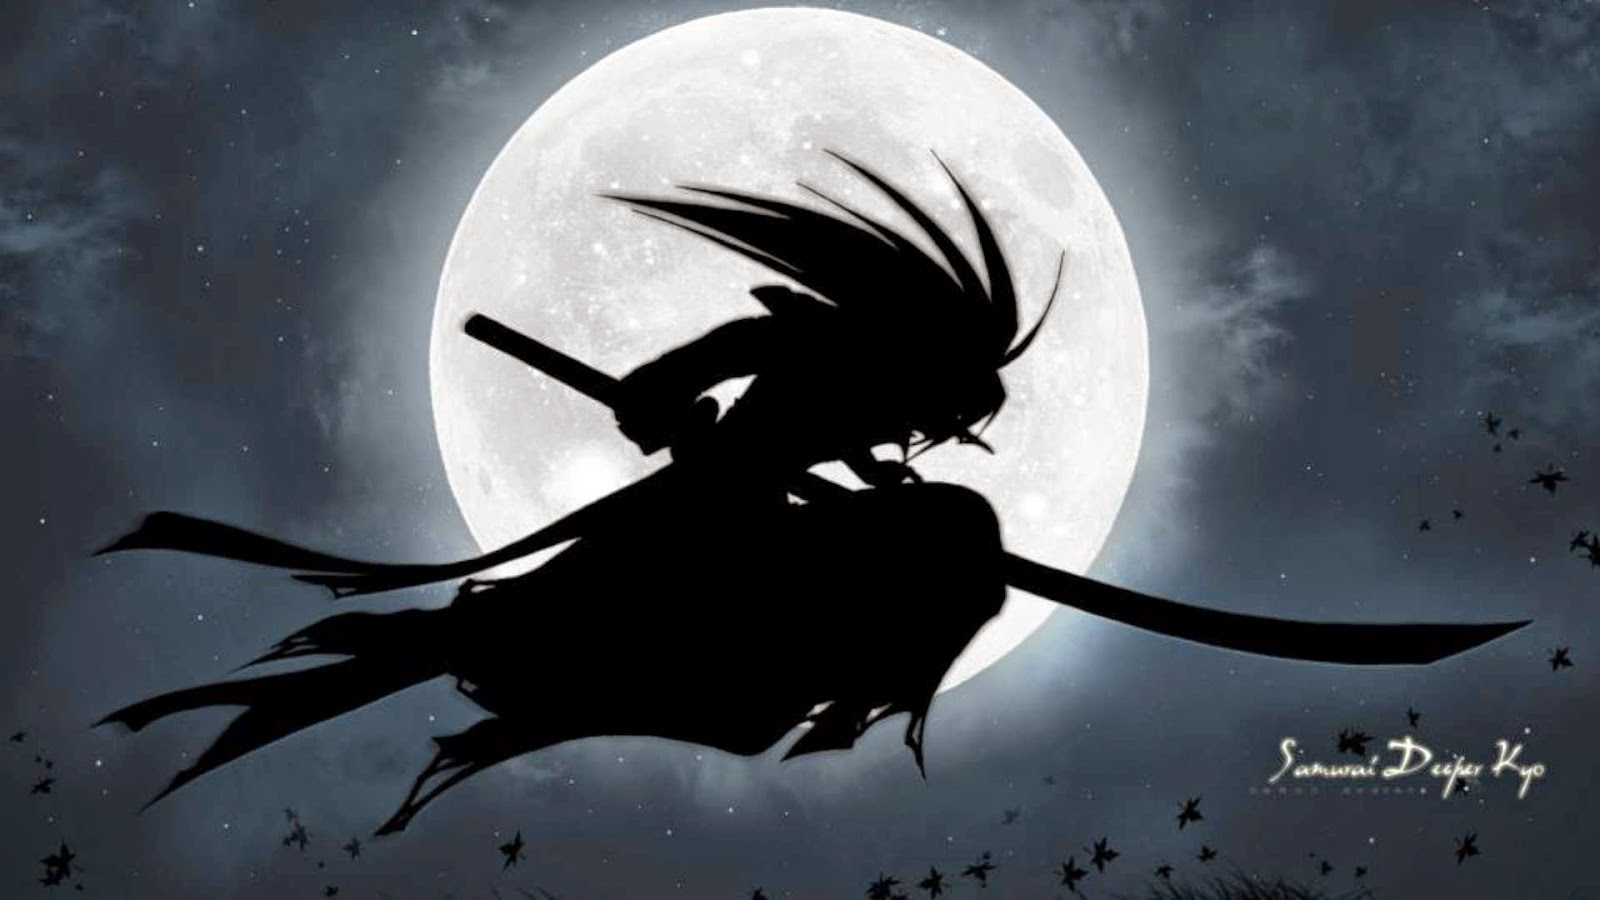 dark anime wallpapers hd 1920x1080 images